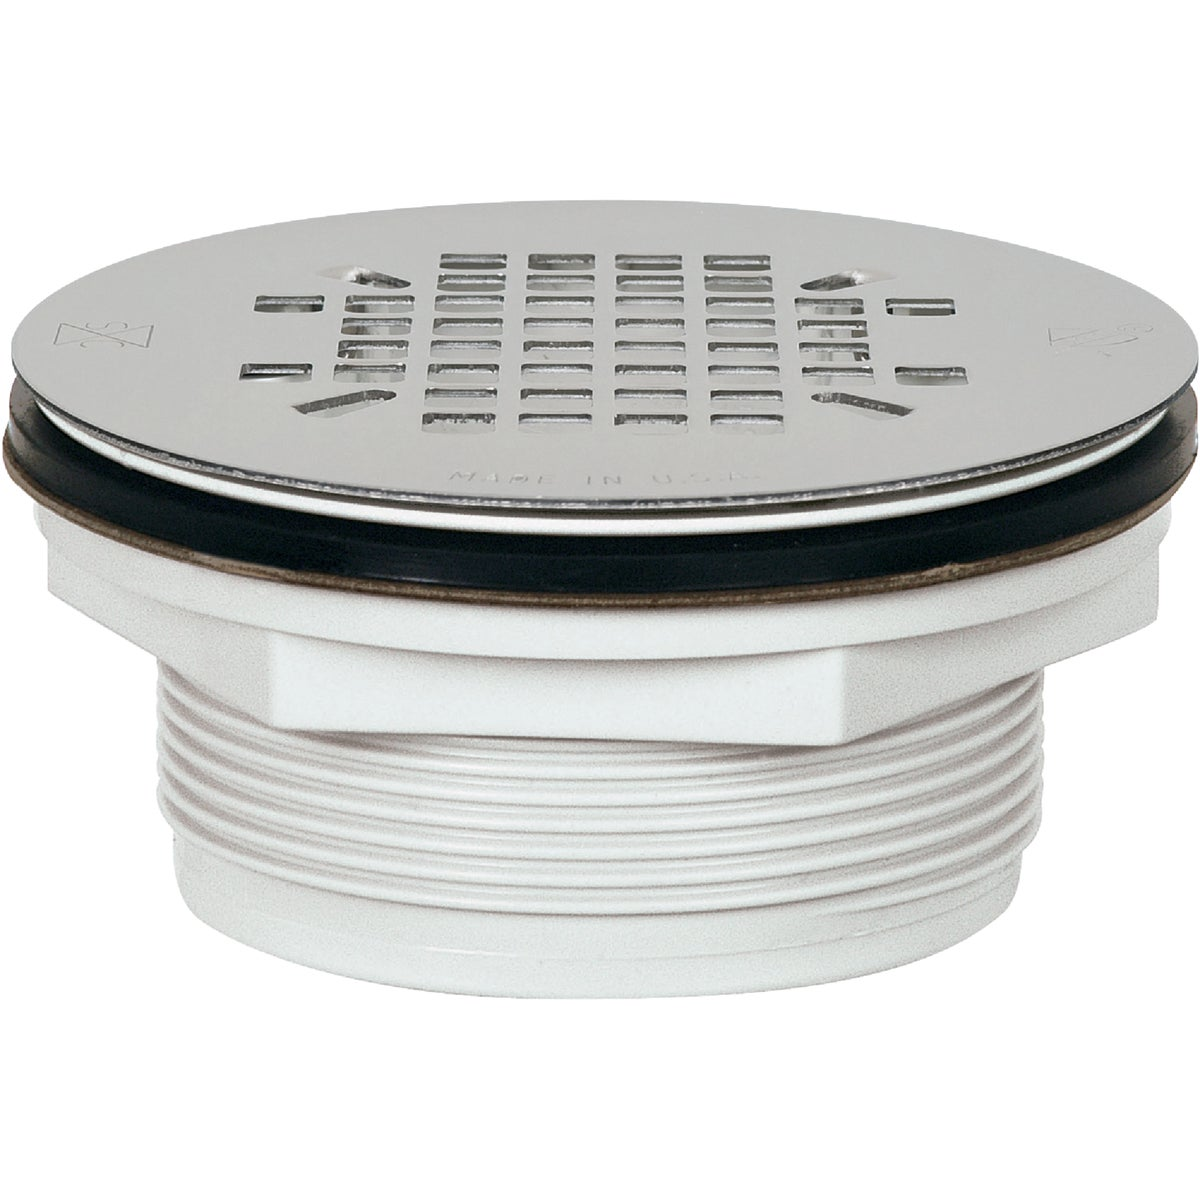 "2"" PVC SHOWER DRAIN - 828-2PK by Sioux Chief Mfg"